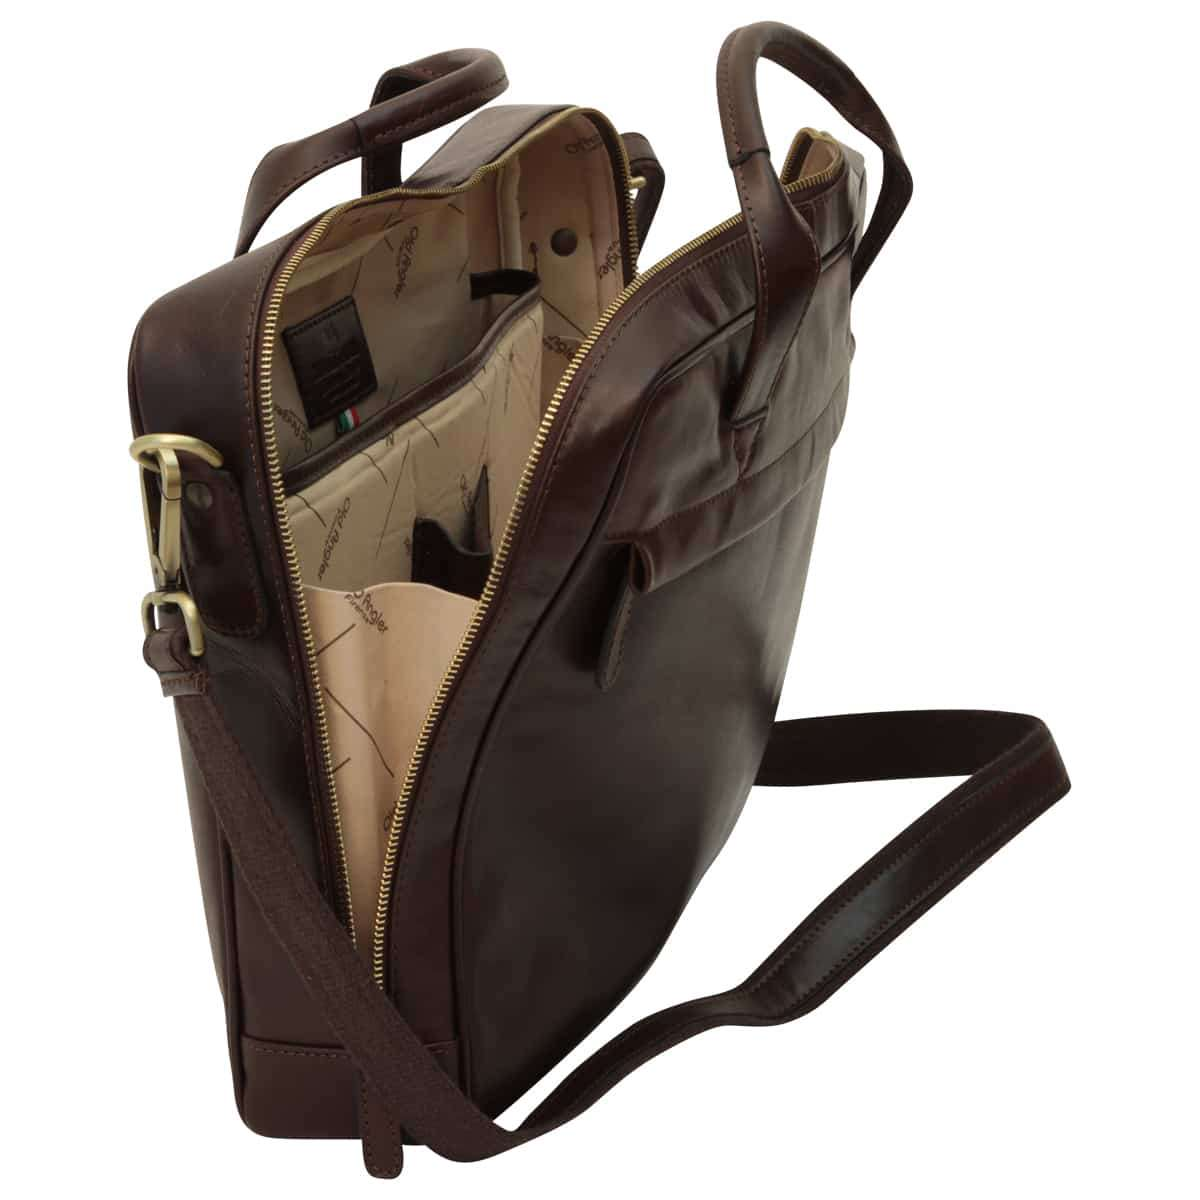 Leather Briefcase with zip closure - Dark Brown | 409489TM E | Old Angler Firenze